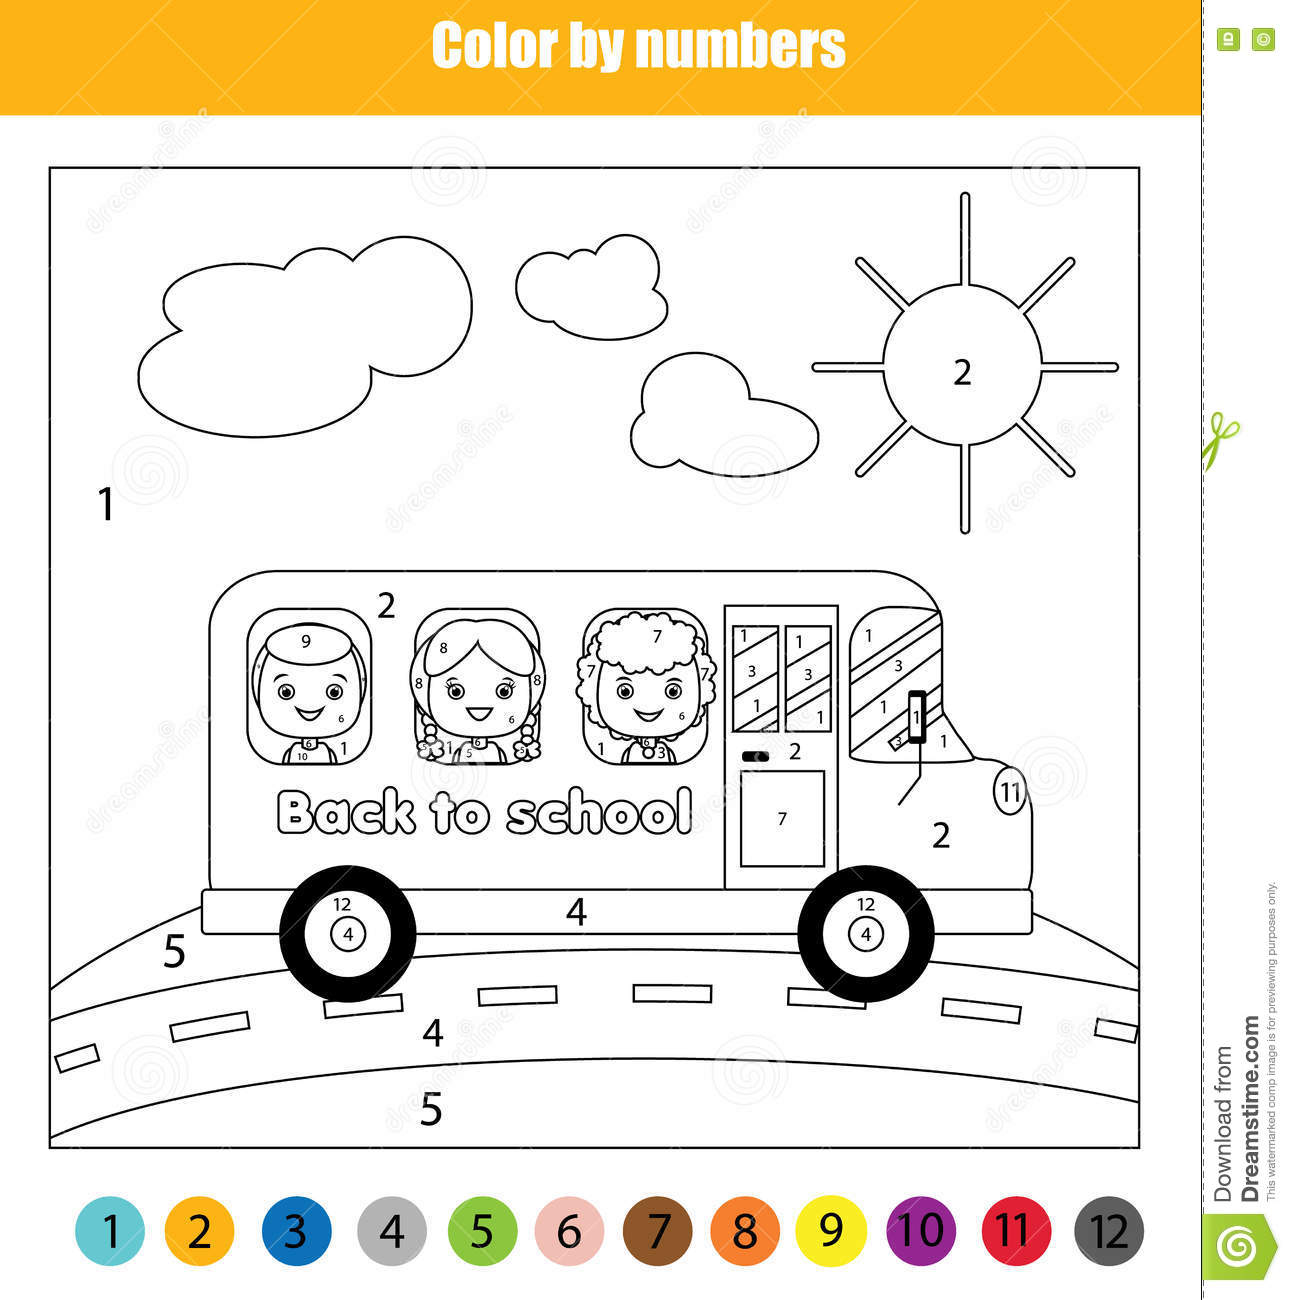 coloring page with kids in bus color by numbers children